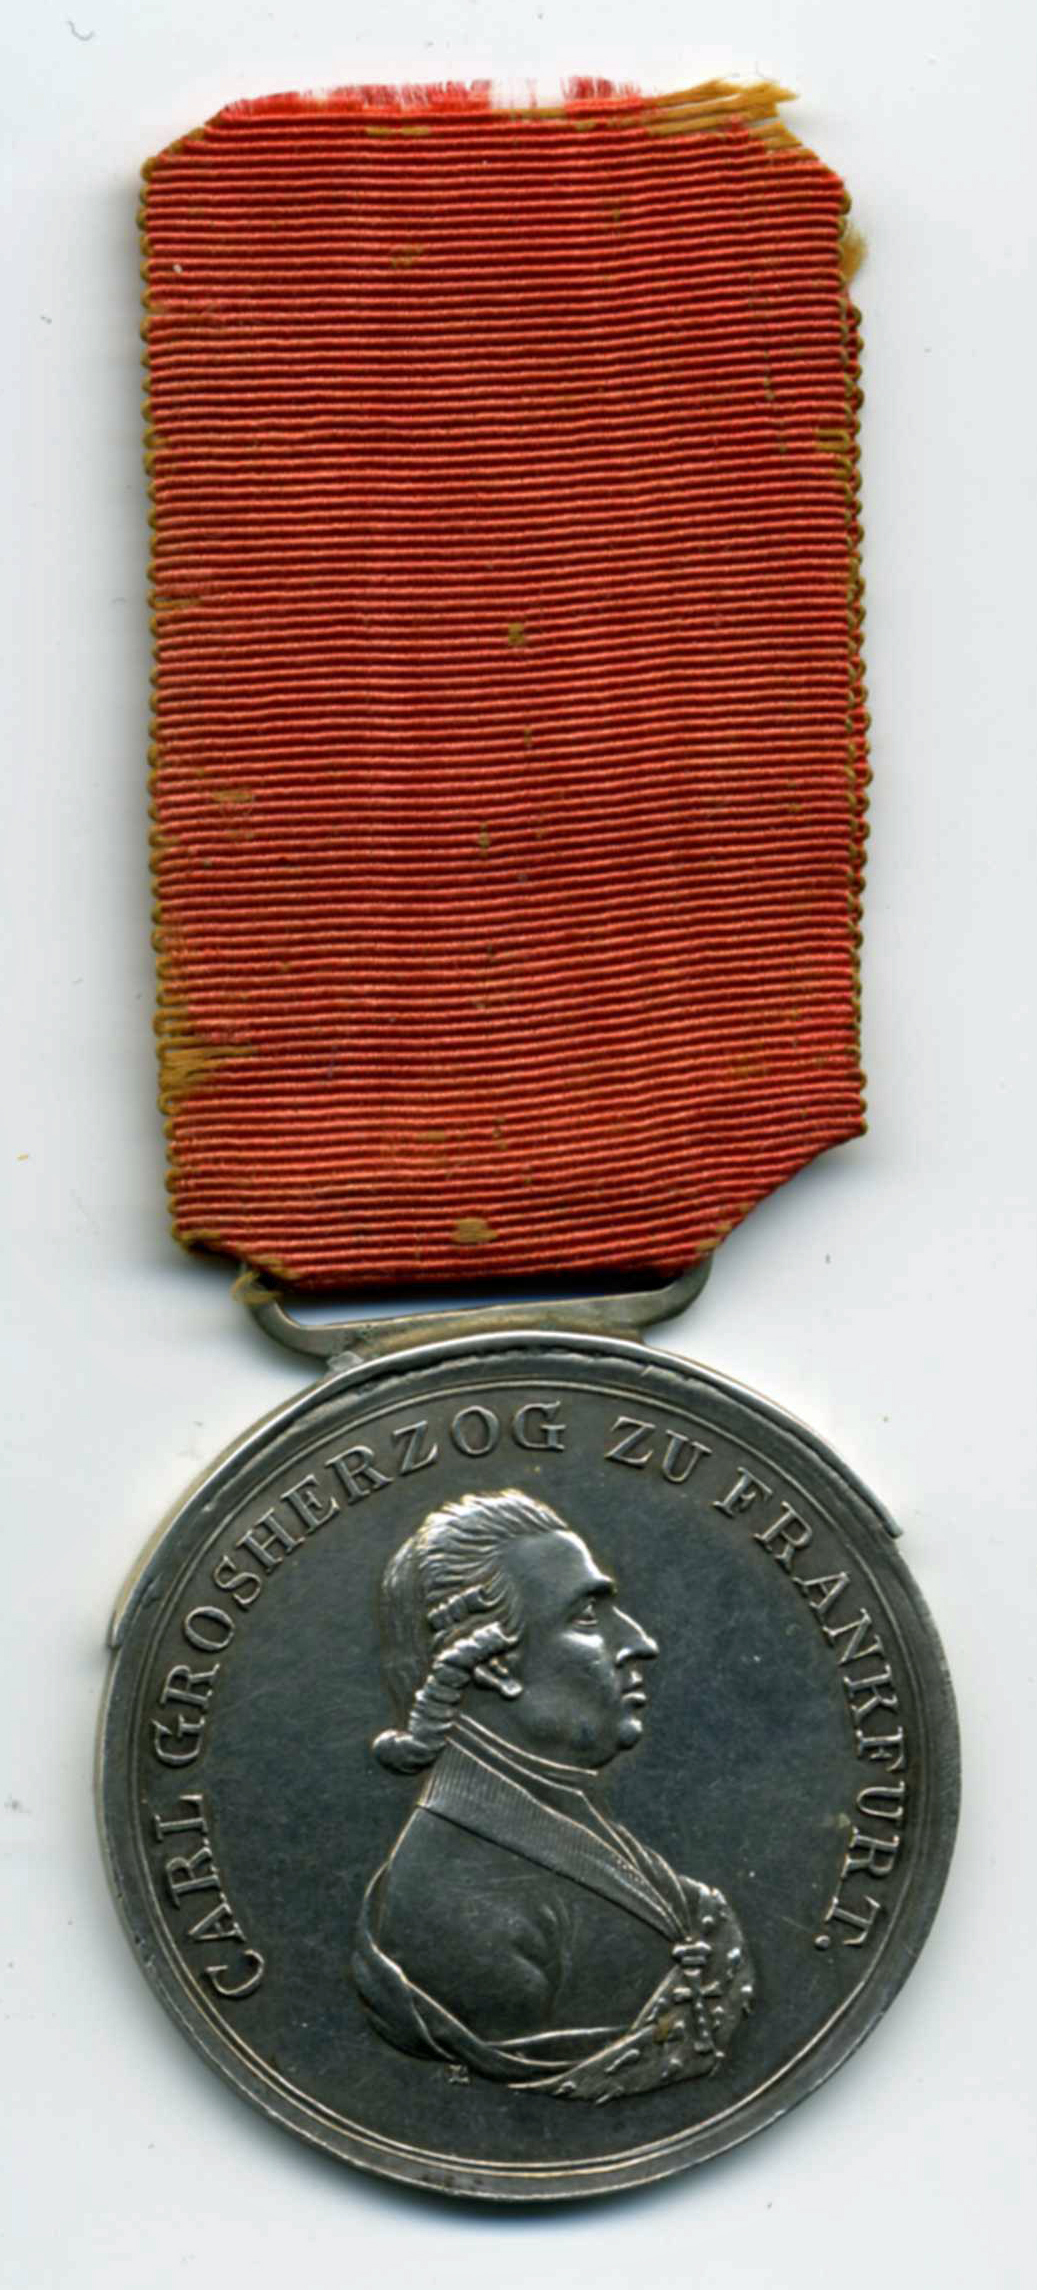 Medal of Honor for the primate, later Grand Ducal frankfurter troops who fought in Spain